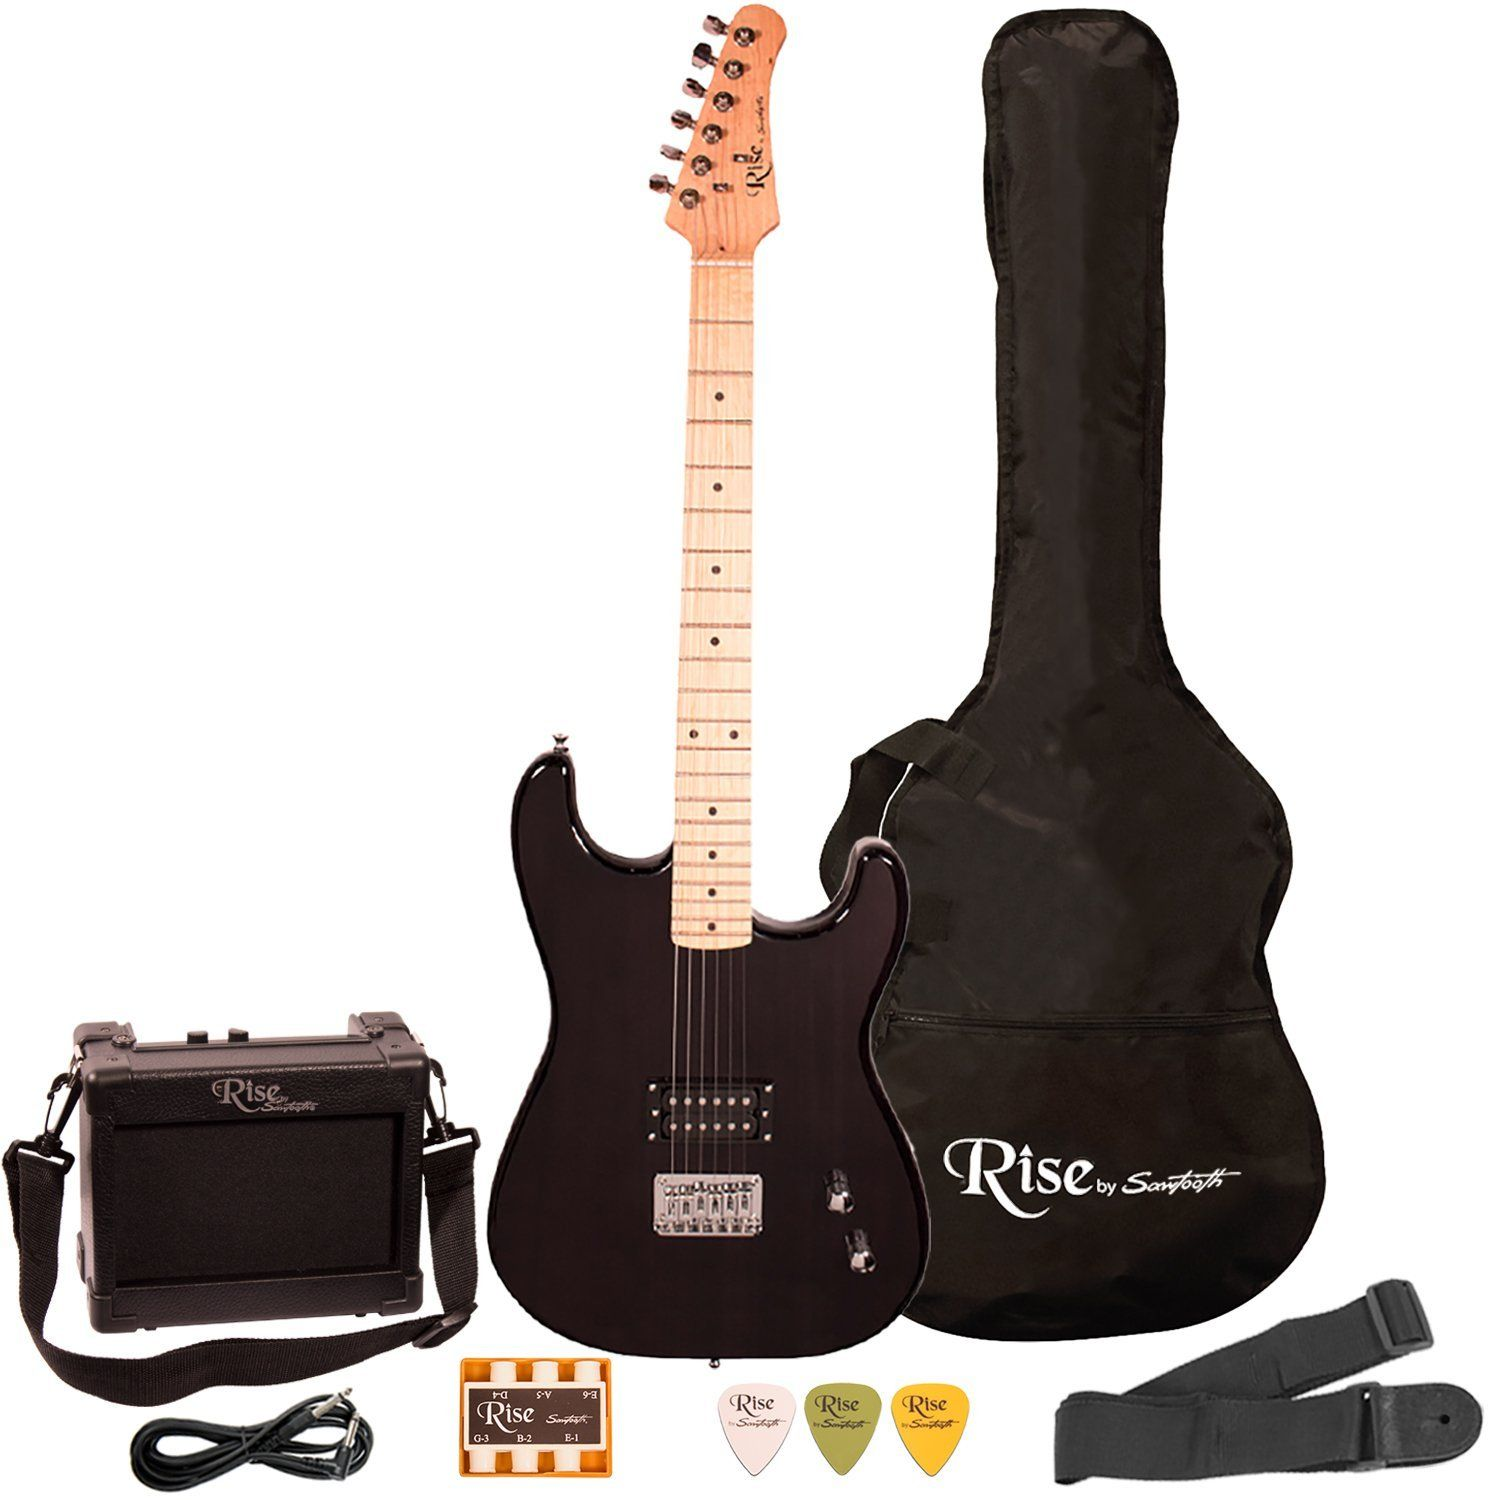 rise by sawtooth st rise st blk kit 1 electric guitar pack black musical. Black Bedroom Furniture Sets. Home Design Ideas